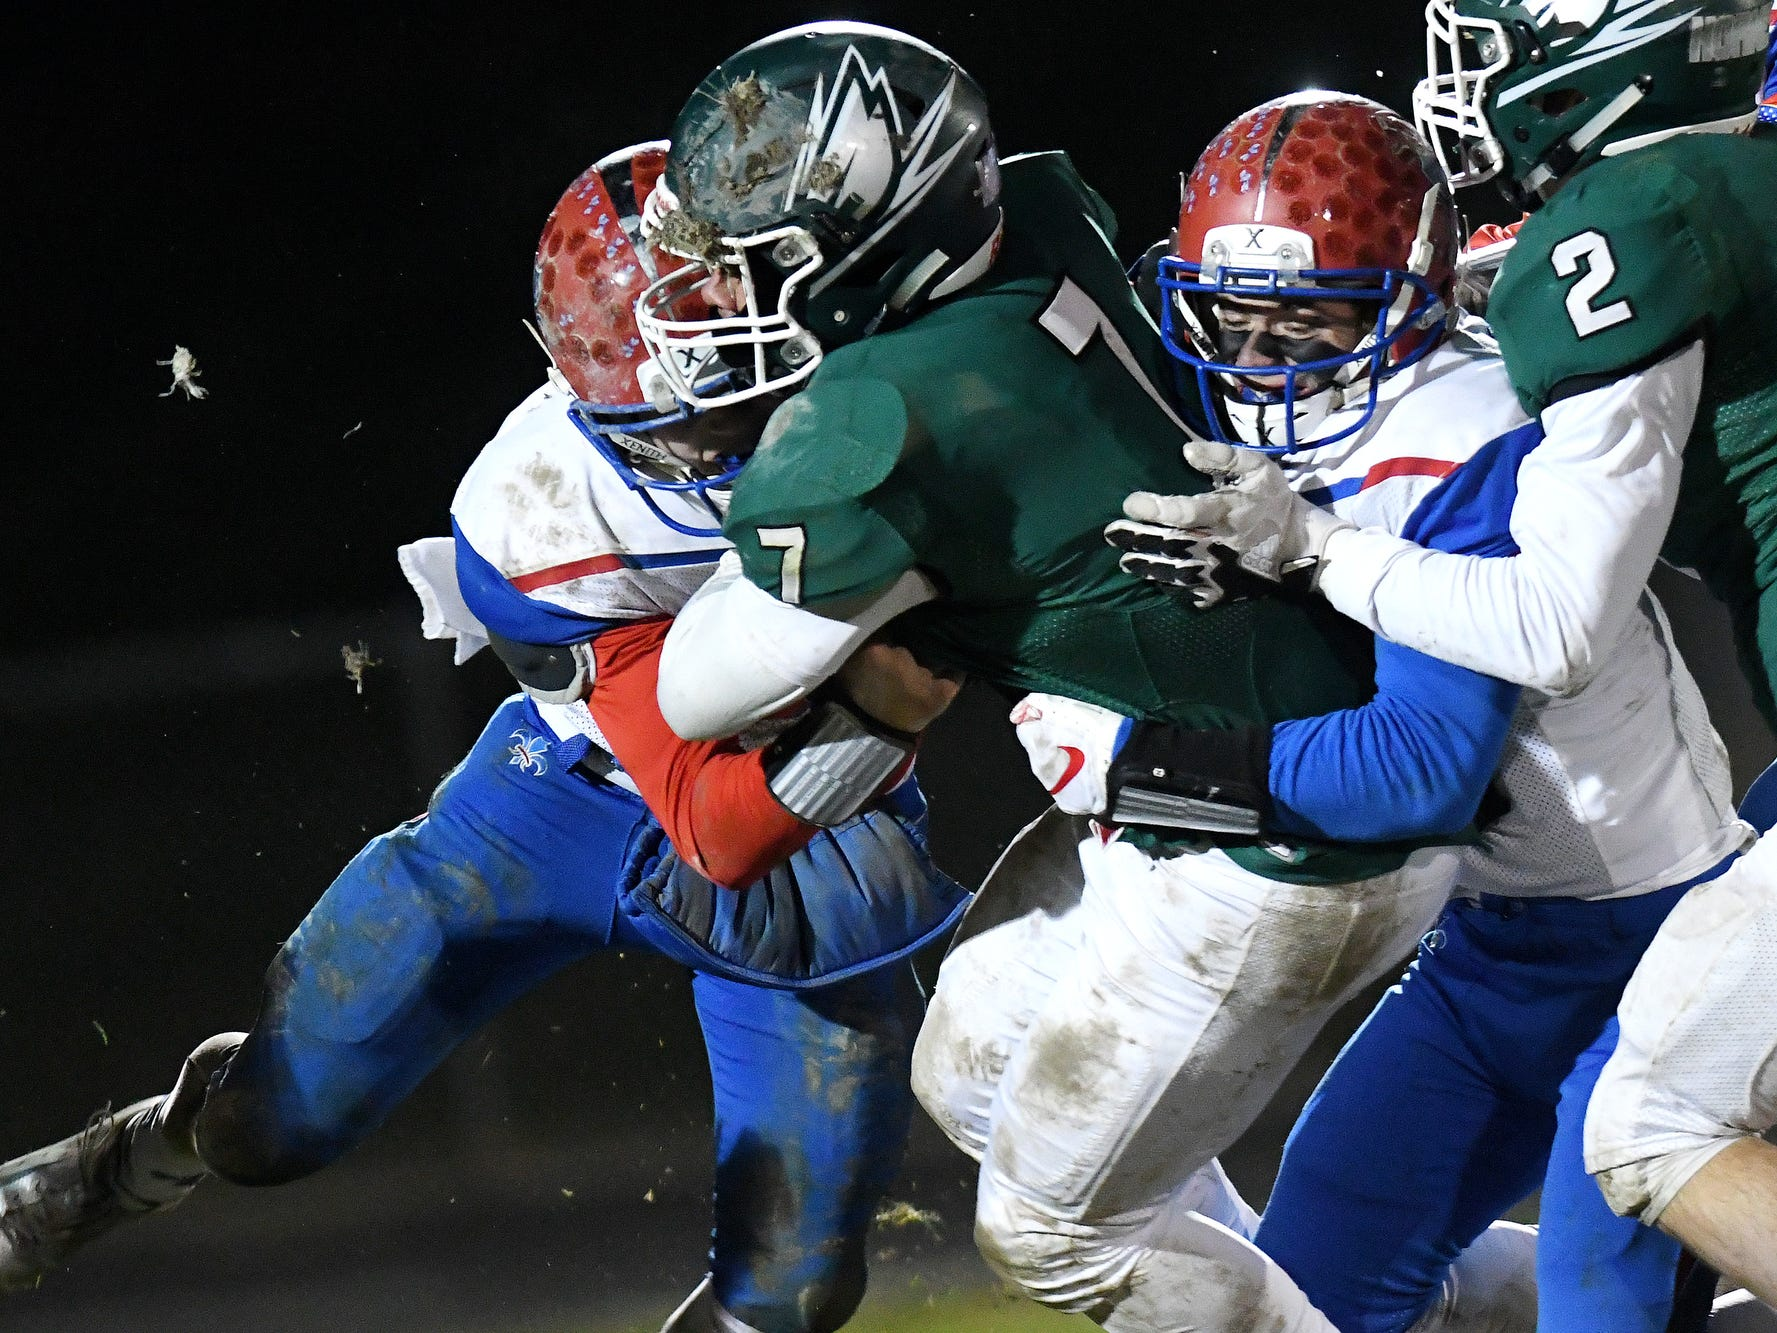 Williamston's Evan Field, center, runs for a gain as St. Clair defenders close in during the fourth quarter on Friday, Nov. 9, 2018, in Williamston.